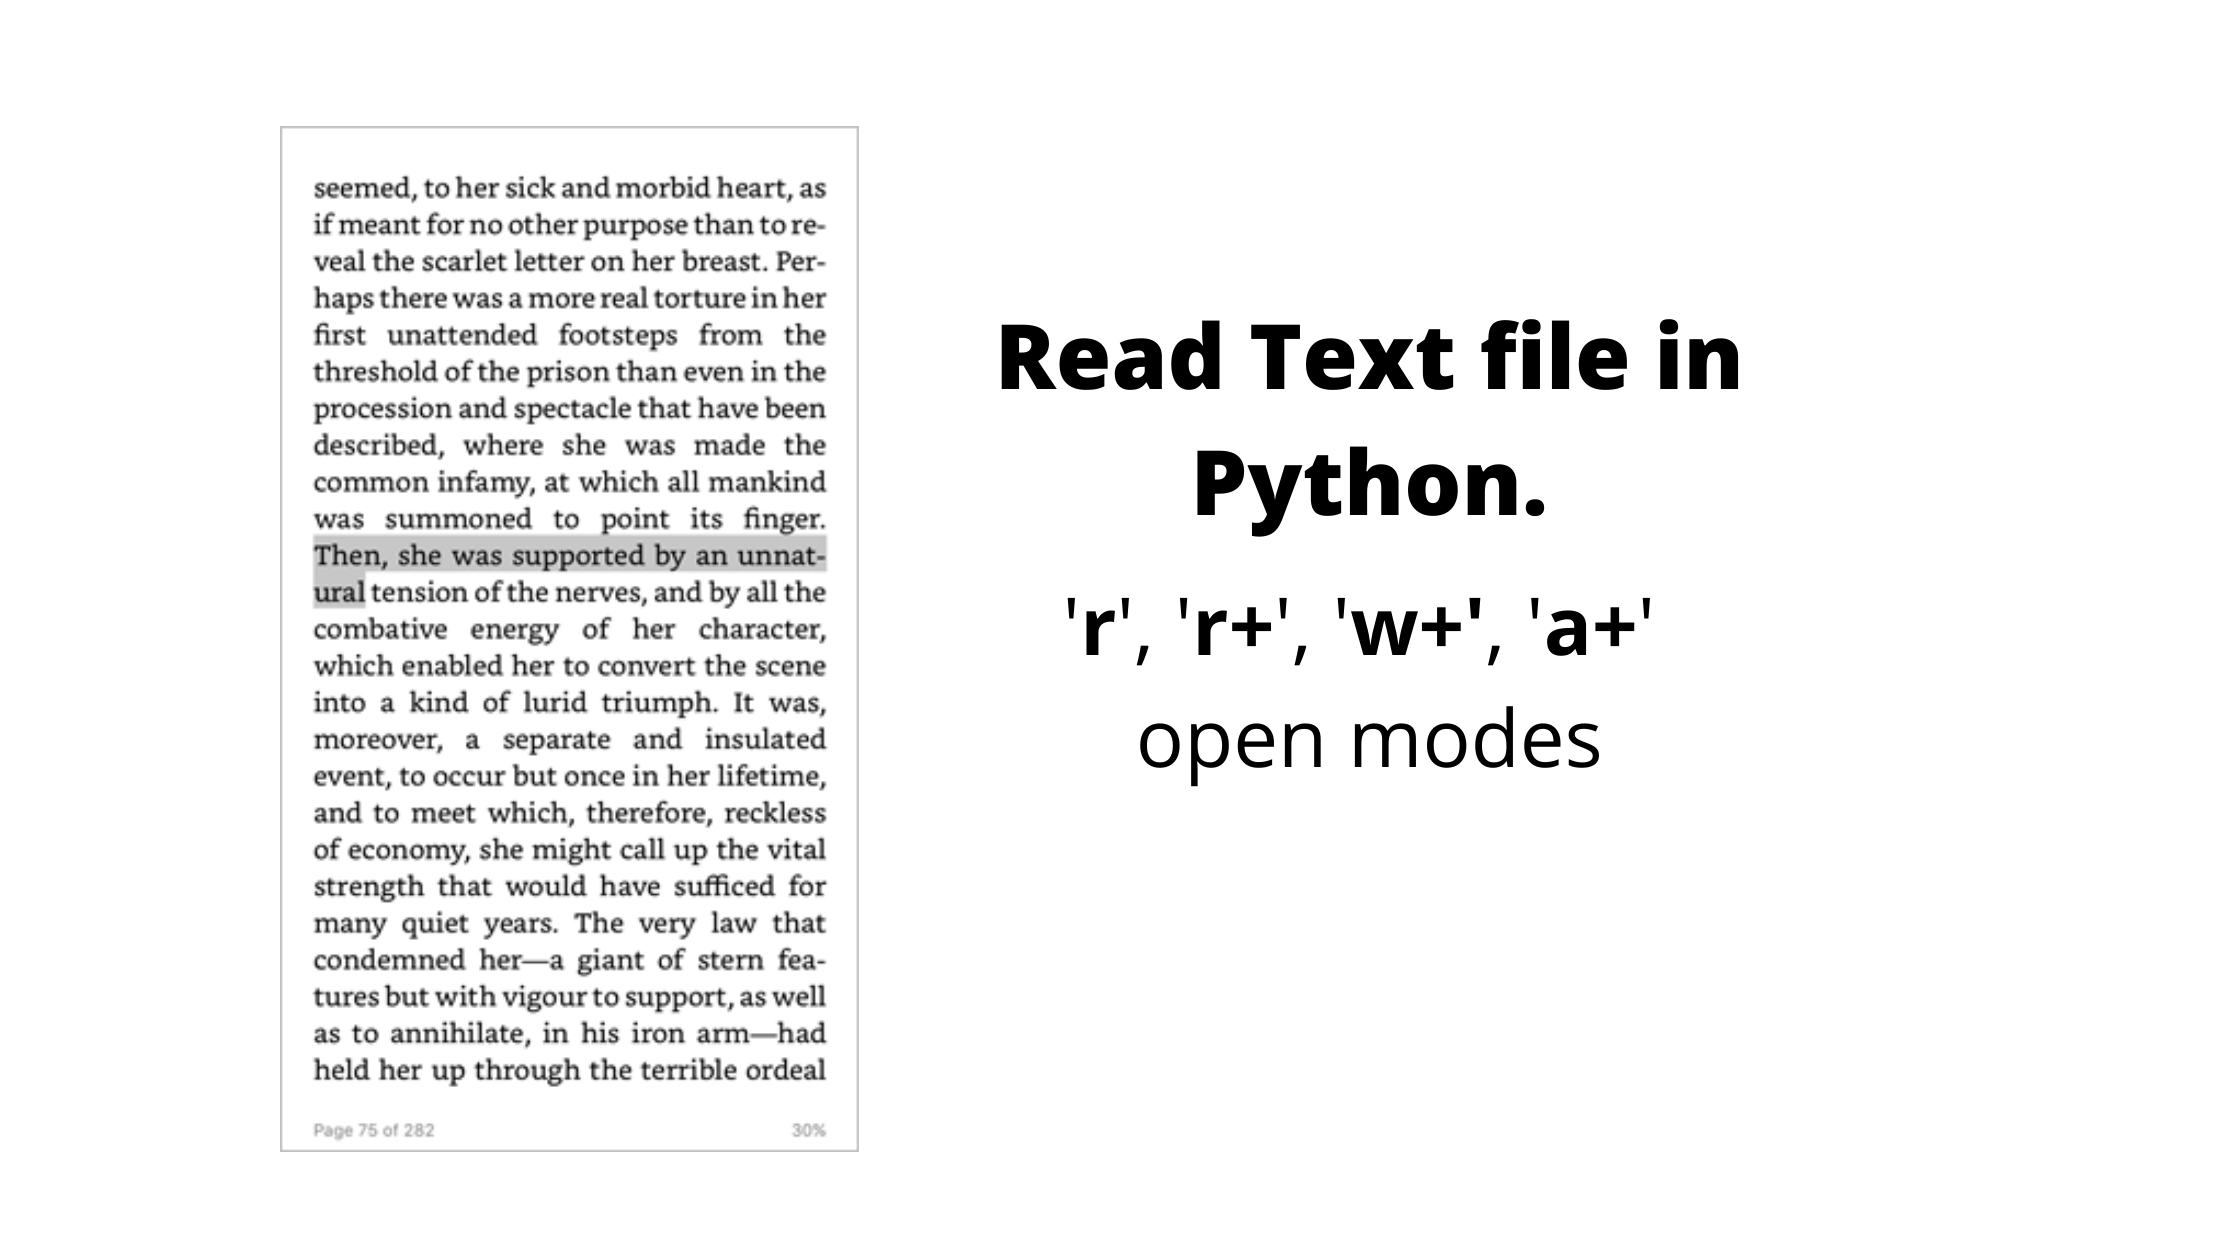 Read Text file in Python.